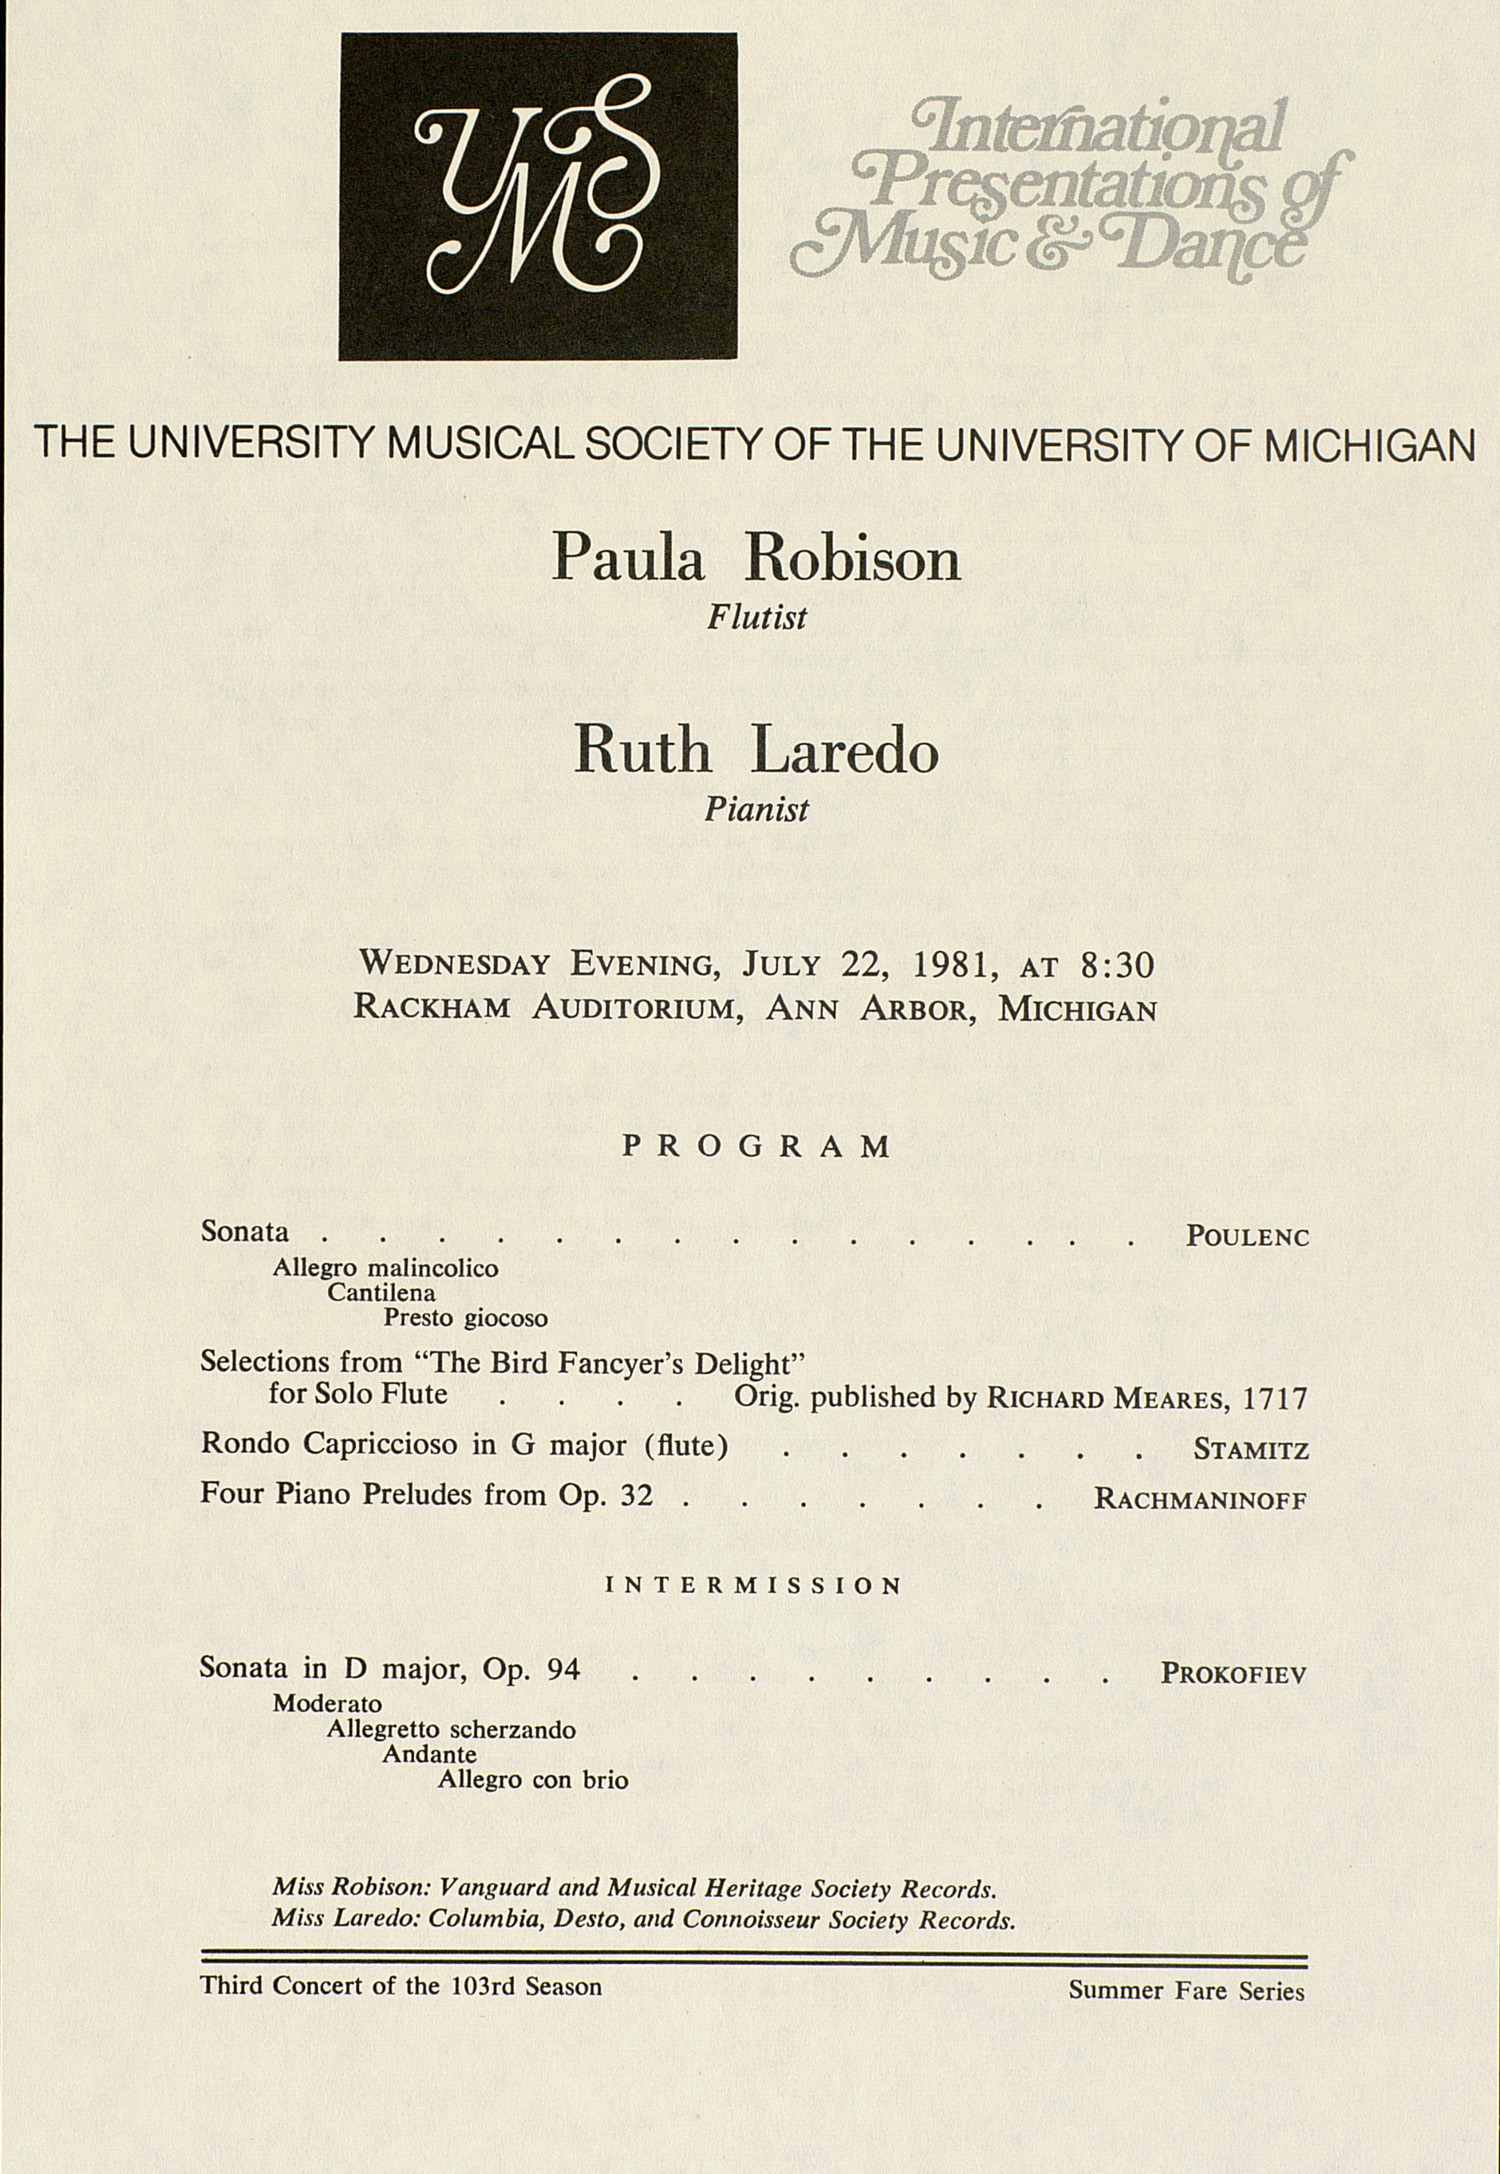 UMS Concert Program, July 22, 1981: International Presentations Of Music & Dance --  image